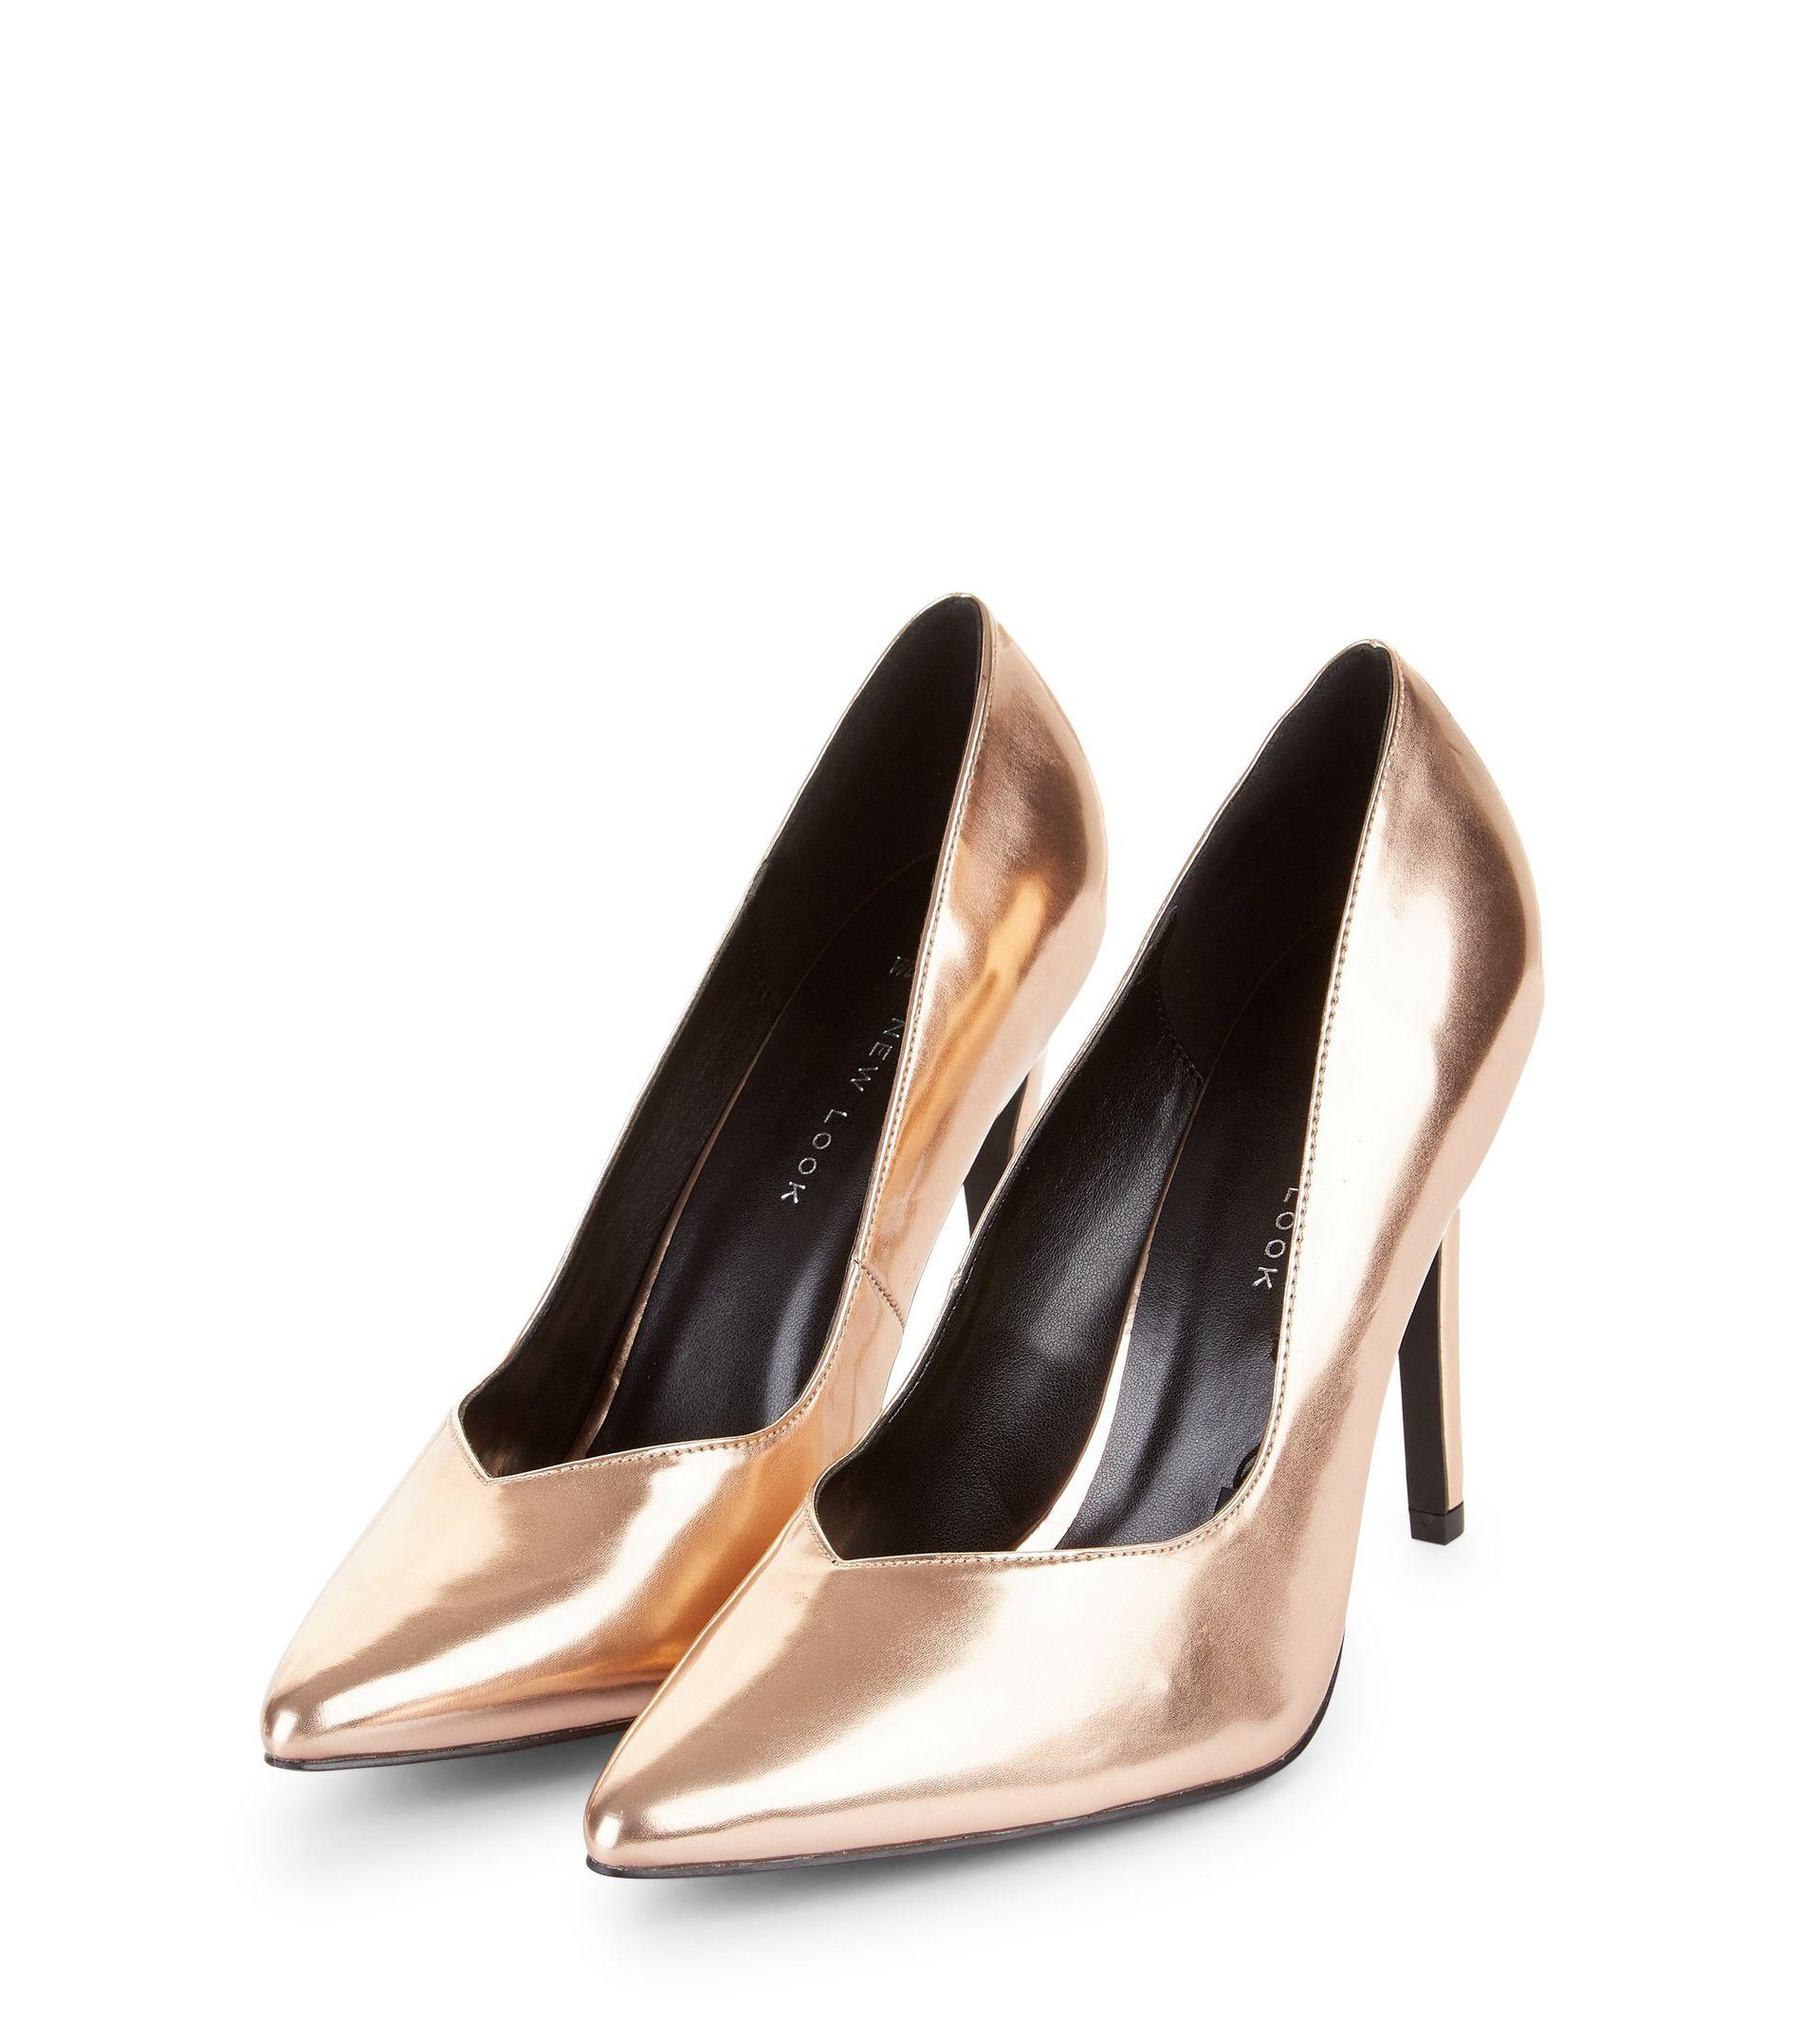 817f856feeb0 New Look Wide Fit Rose Gold Metallic V Throat Toe Court Shoes in ...